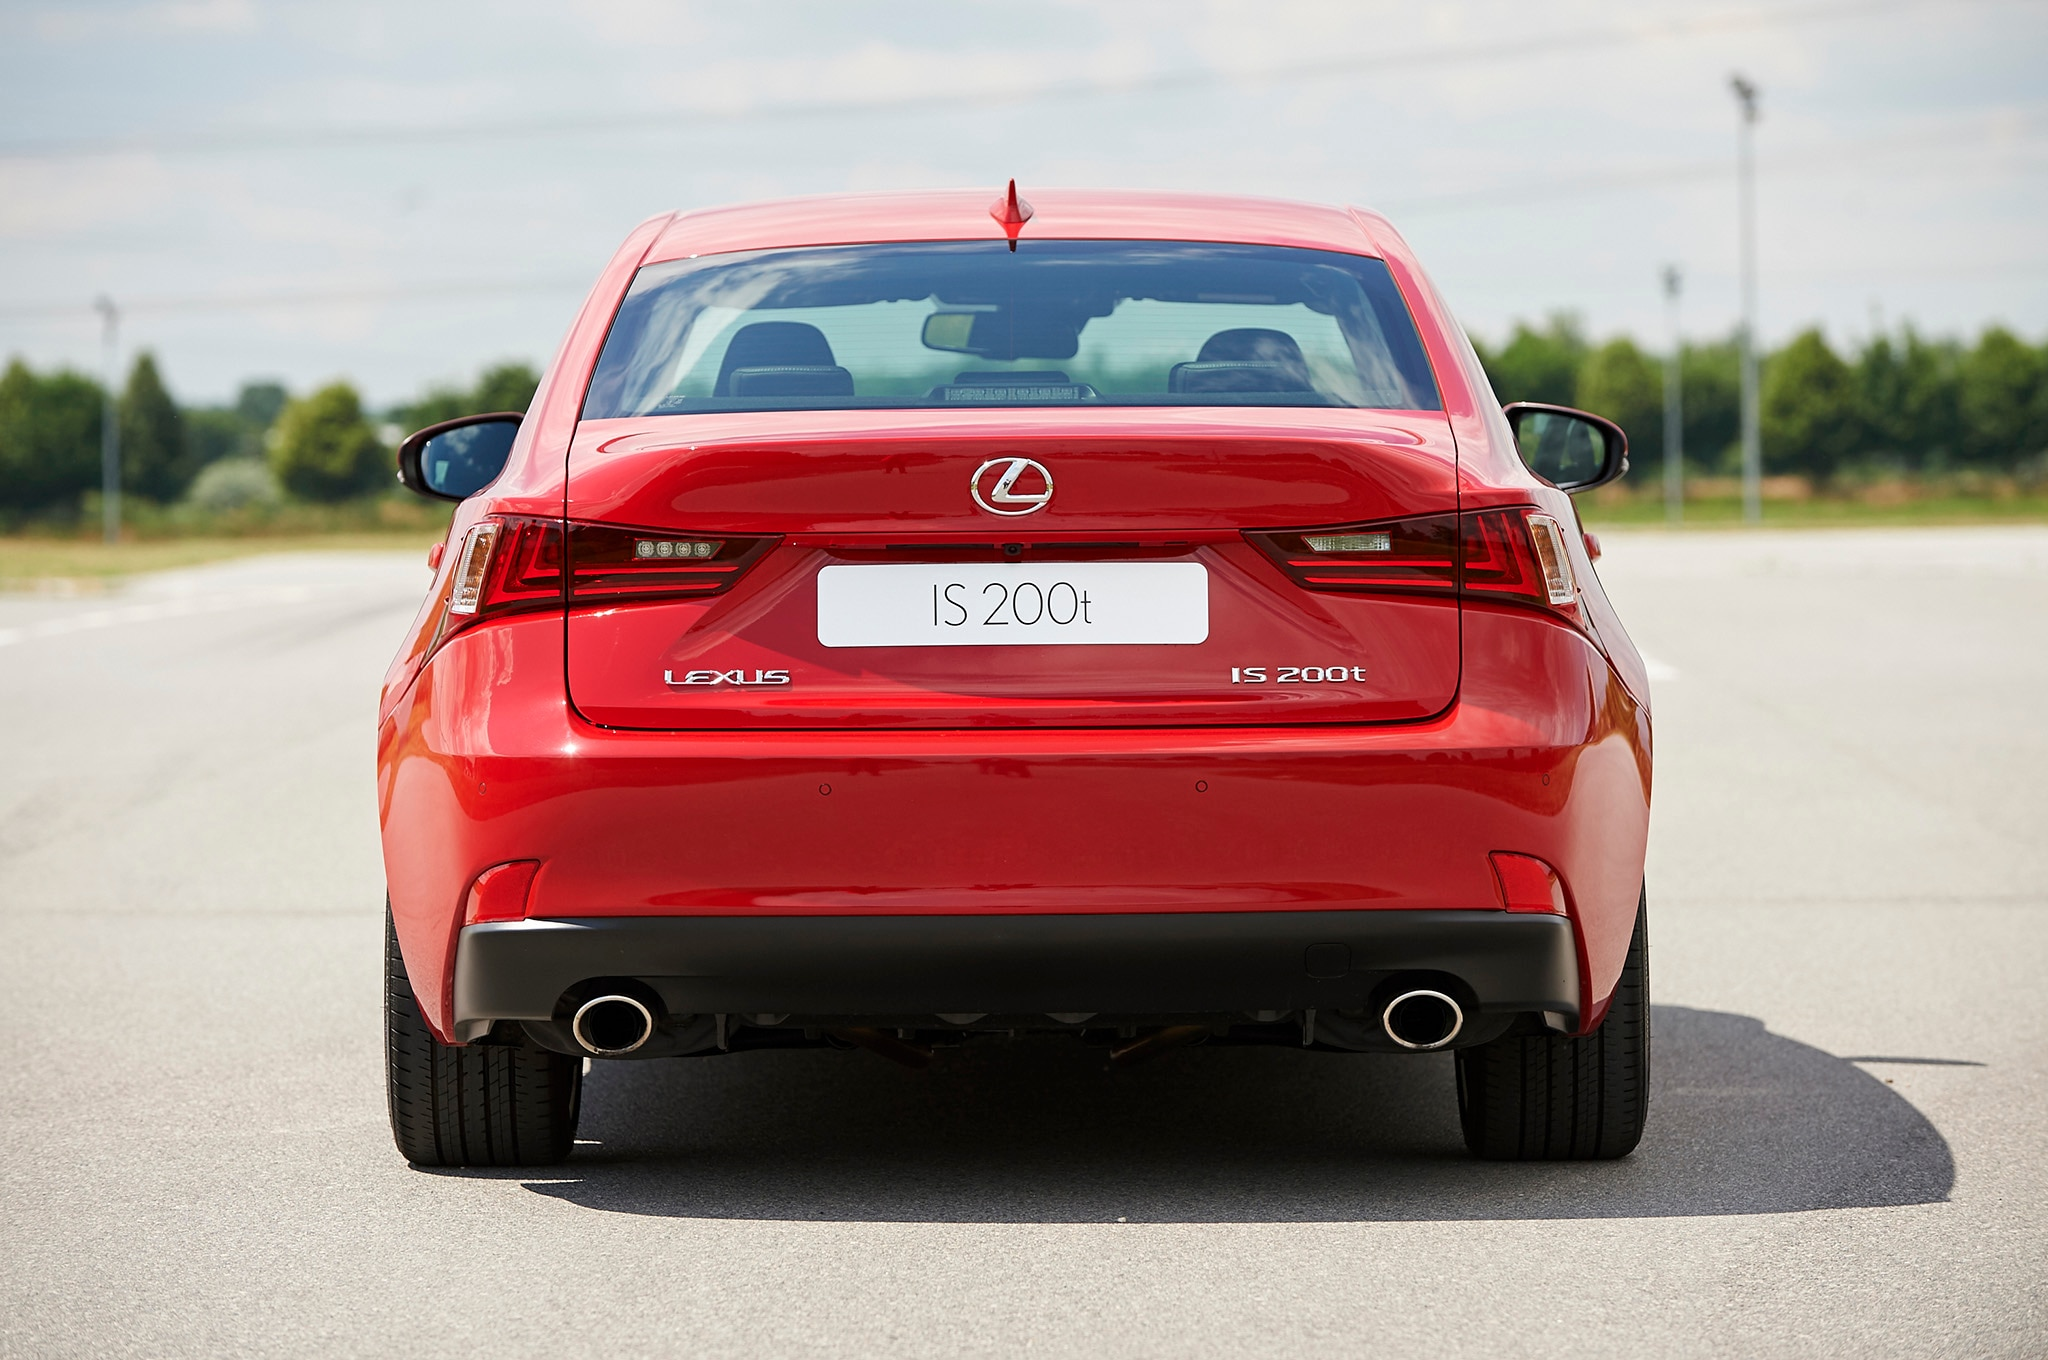 2016 Lexus Is200t Rated At Up To 33 Mpg